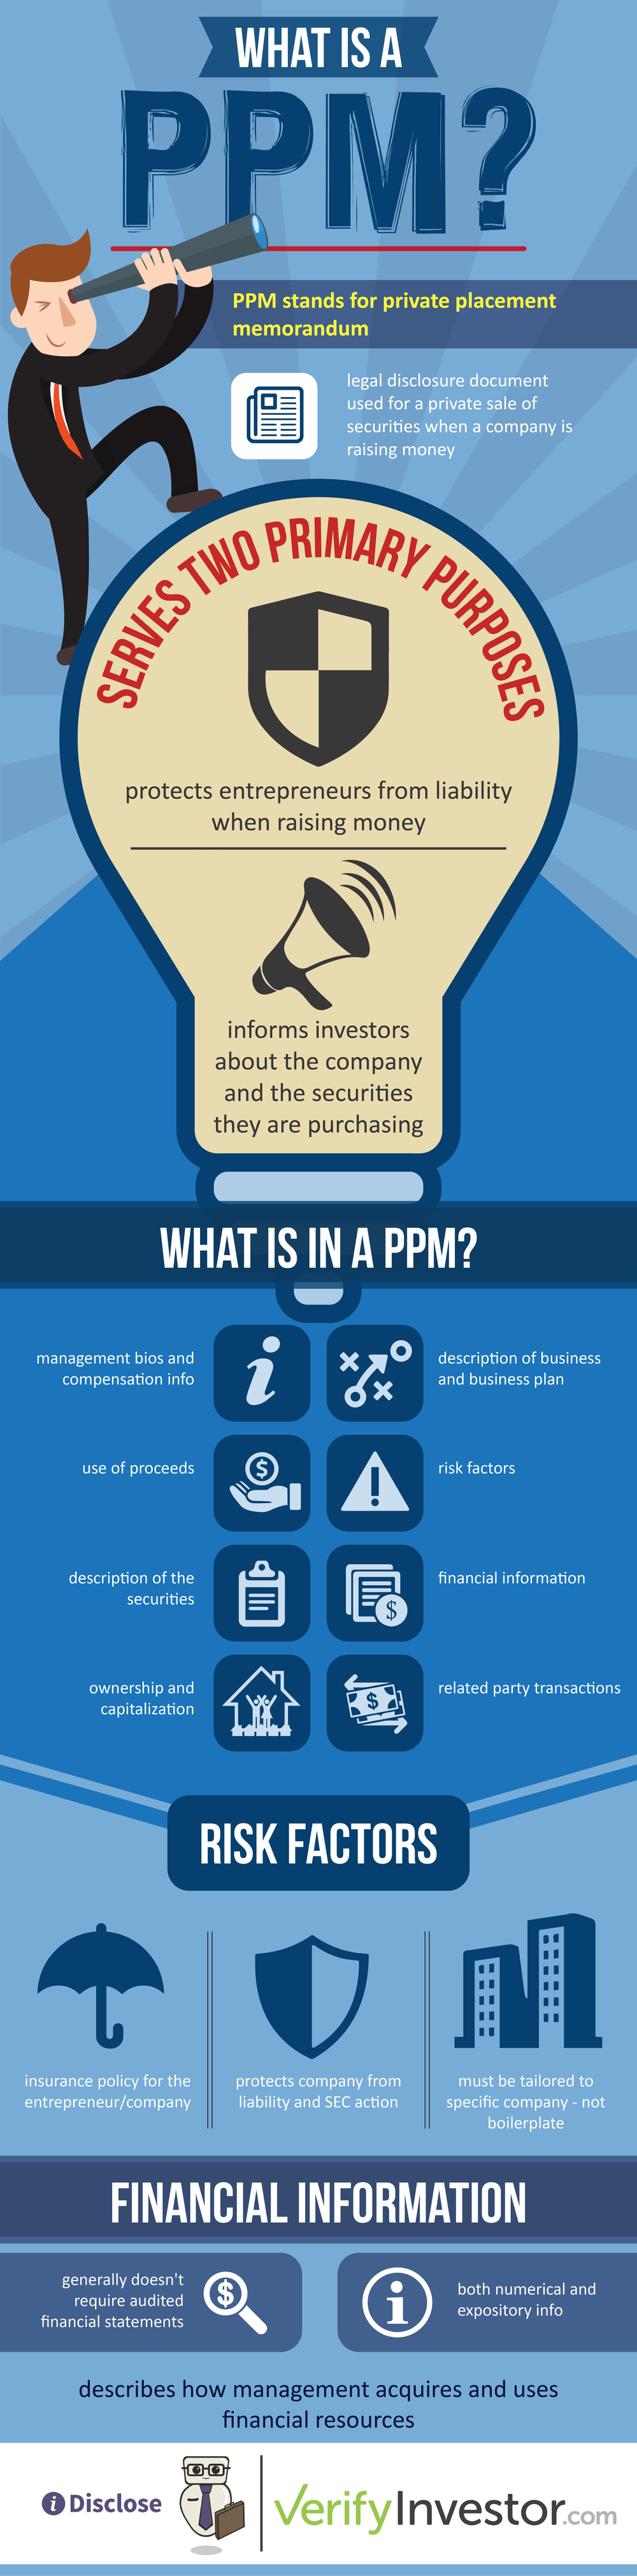 PPM Infographic